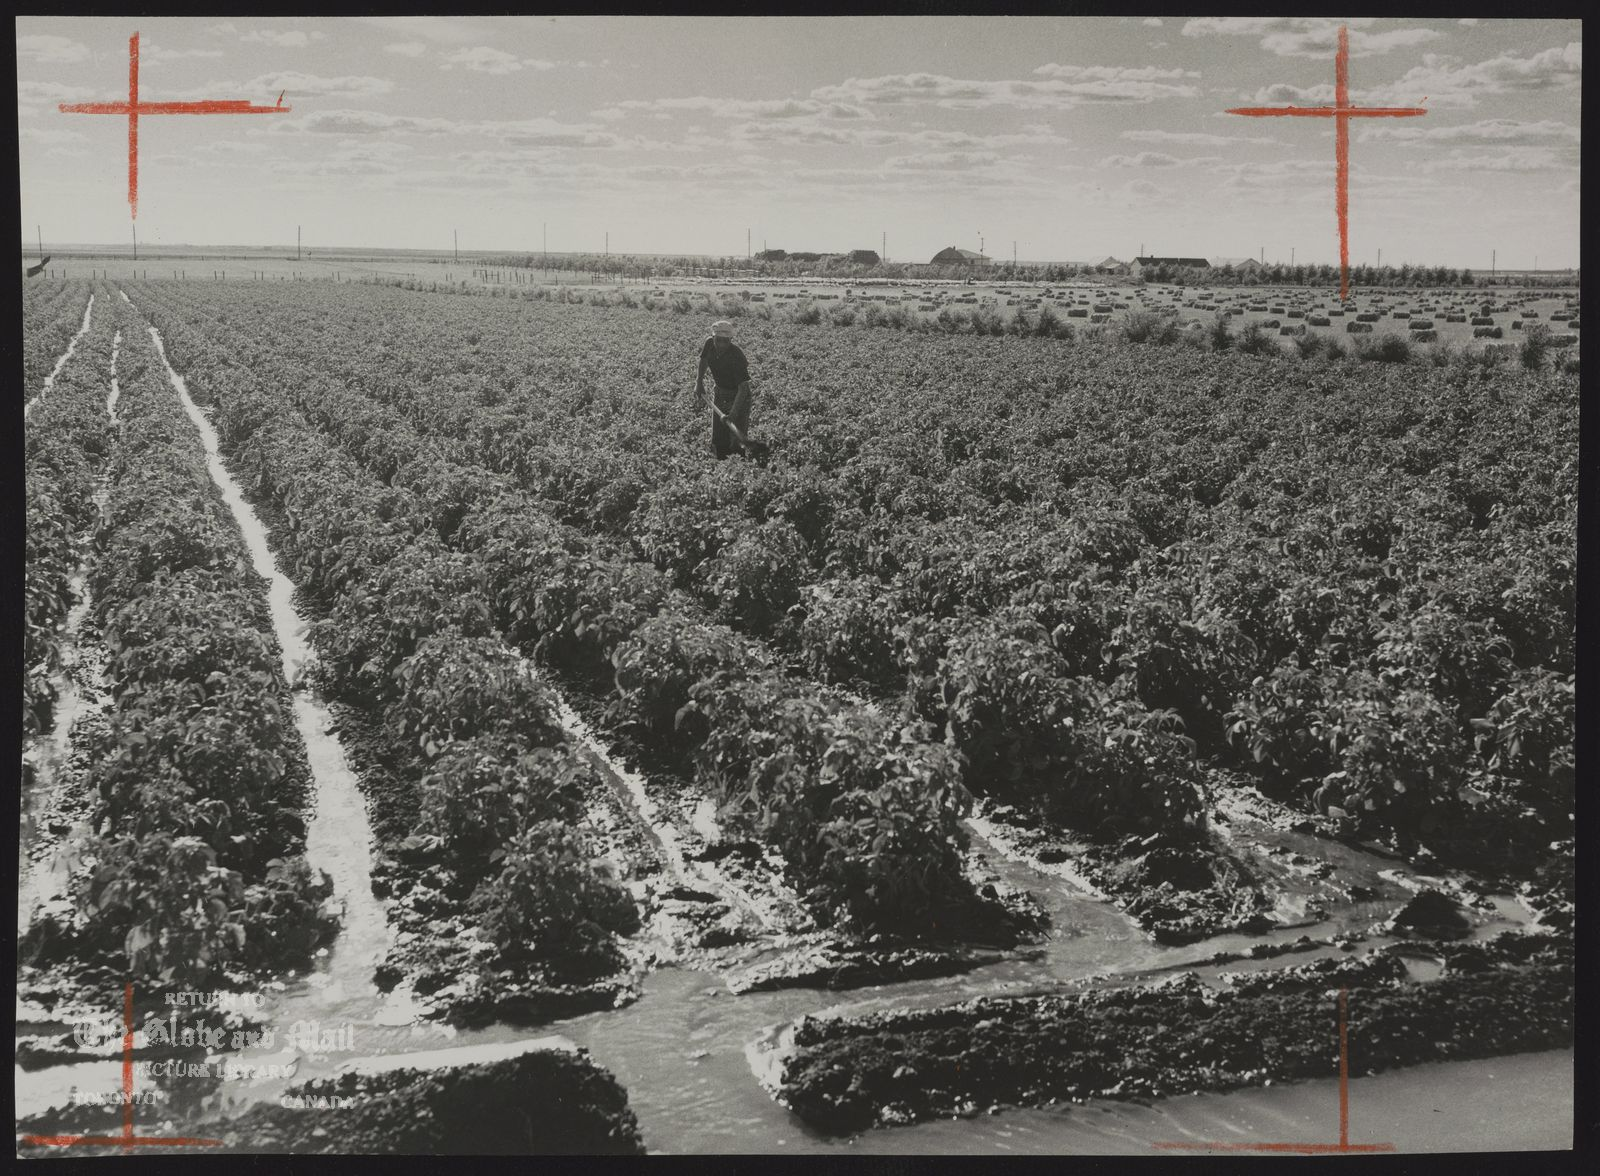 Irrigation by the ditch and lateral method of a crop of potatoes on the Pre-Development Farm. July 1953 [PFRA - Prairie Farm Rehabilitation Administration. The farm was desgined to demonstrate irrigation technology to assist farmers in their transition to irrigated agriculture. The farm was in operation from 1949 to 1986]